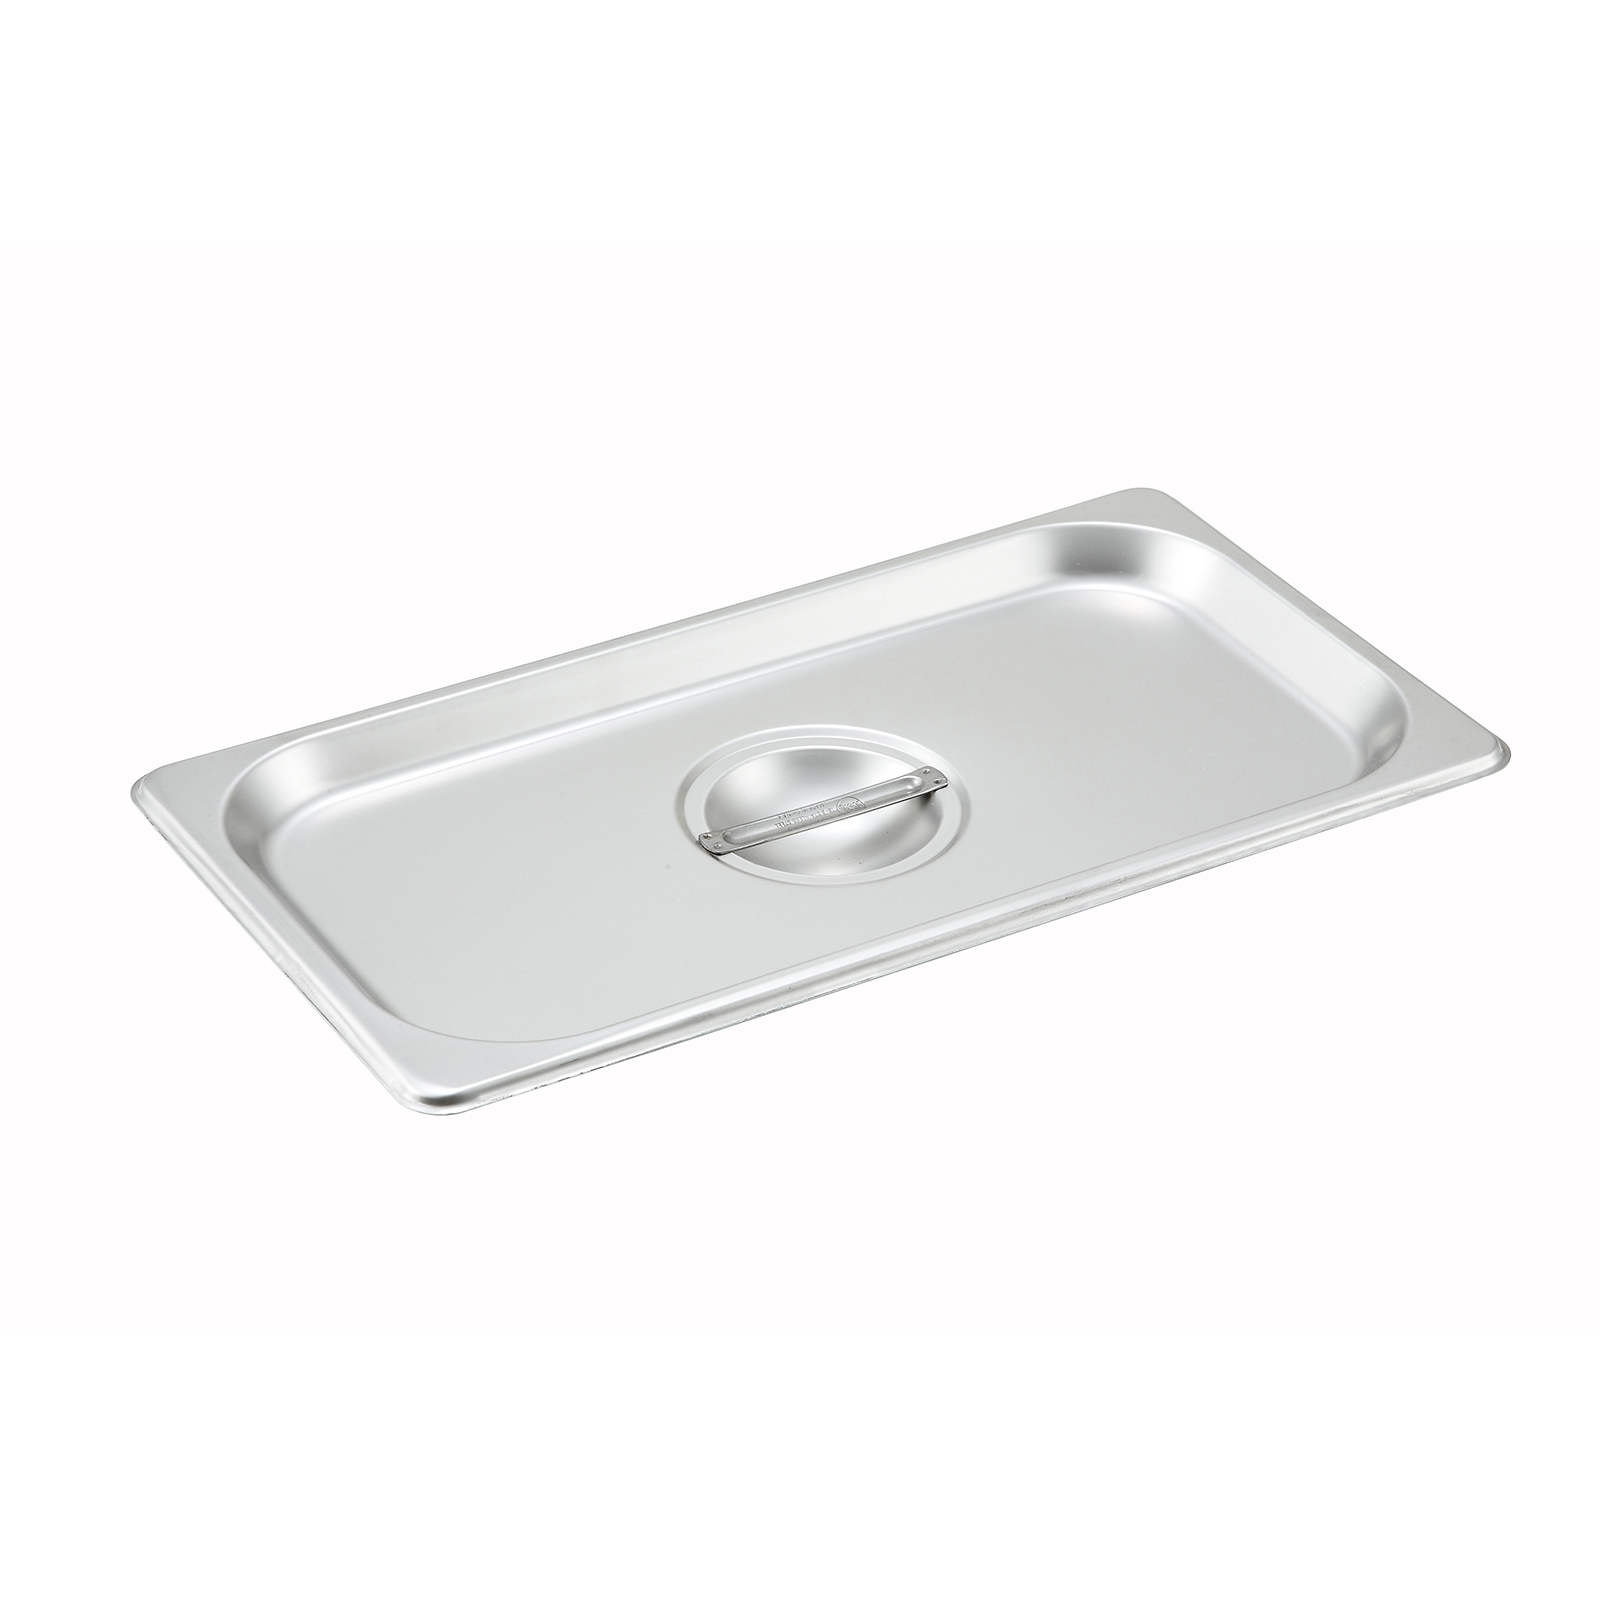 Winco SPSCT steam table pan cover, stainless steel